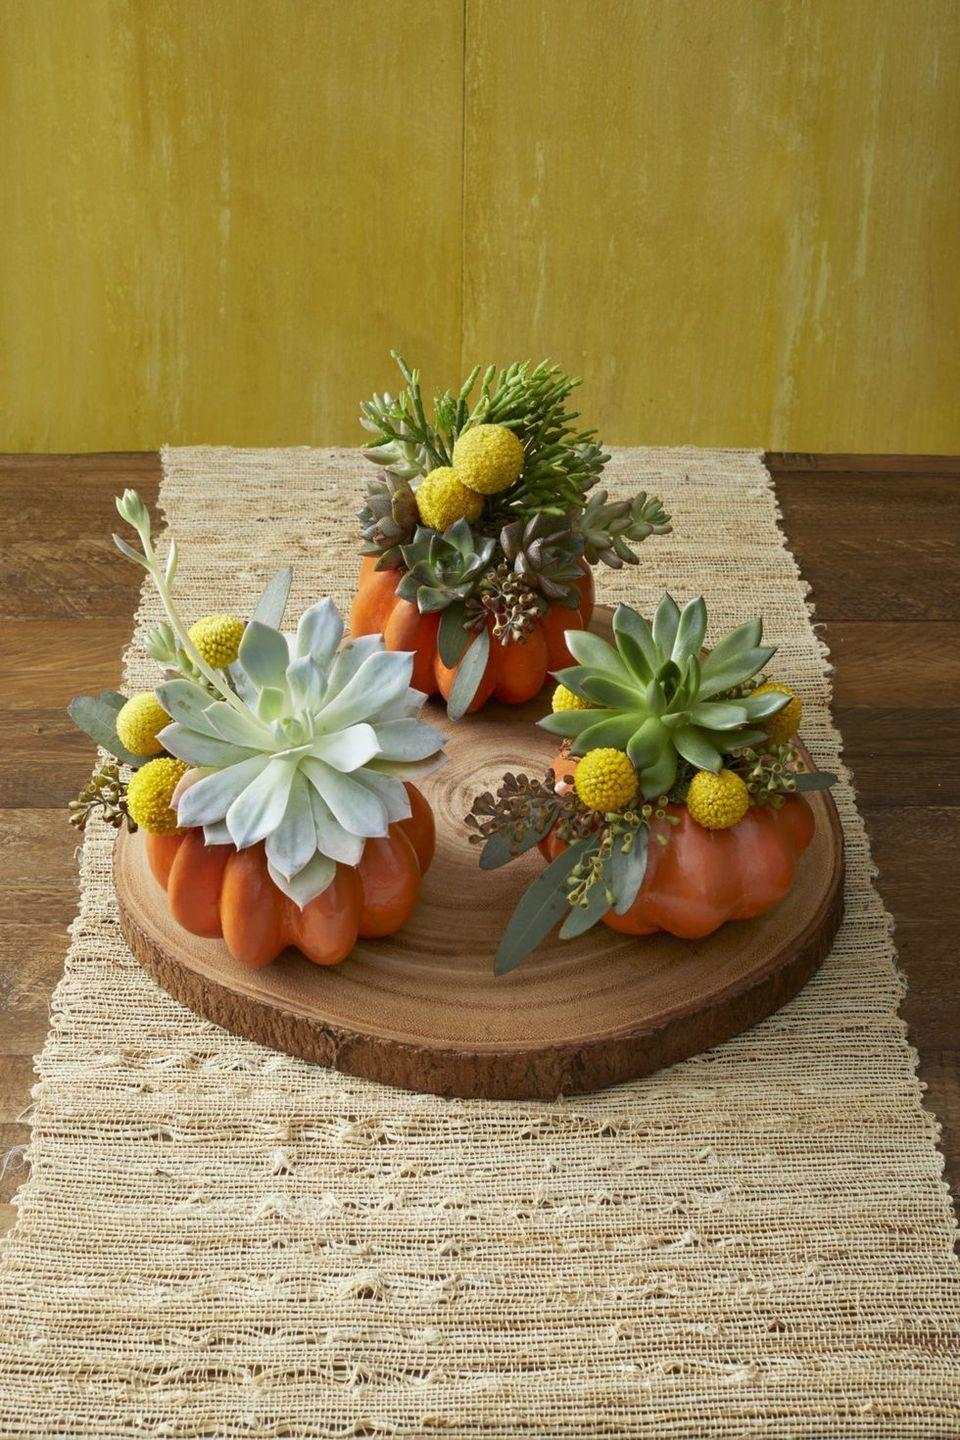 """<p>As if mini pumpkins weren't cute enough already! Here, they're transformed into planters for succulents, which are simply tucked into the carved-out top.</p><p><a class=""""link rapid-noclick-resp"""" href=""""https://go.redirectingat.com?id=74968X1596630&url=https%3A%2F%2Fwww.walmart.com%2Fsearch%2F%3Fquery%3Dsucculents&sref=https%3A%2F%2Fwww.thepioneerwoman.com%2Fhome-lifestyle%2Fcrafts-diy%2Fg36982763%2Fpumpkin-carving-ideas%2F"""" rel=""""nofollow noopener"""" target=""""_blank"""" data-ylk=""""slk:SHOP SUCCULENTS"""">SHOP SUCCULENTS</a></p>"""